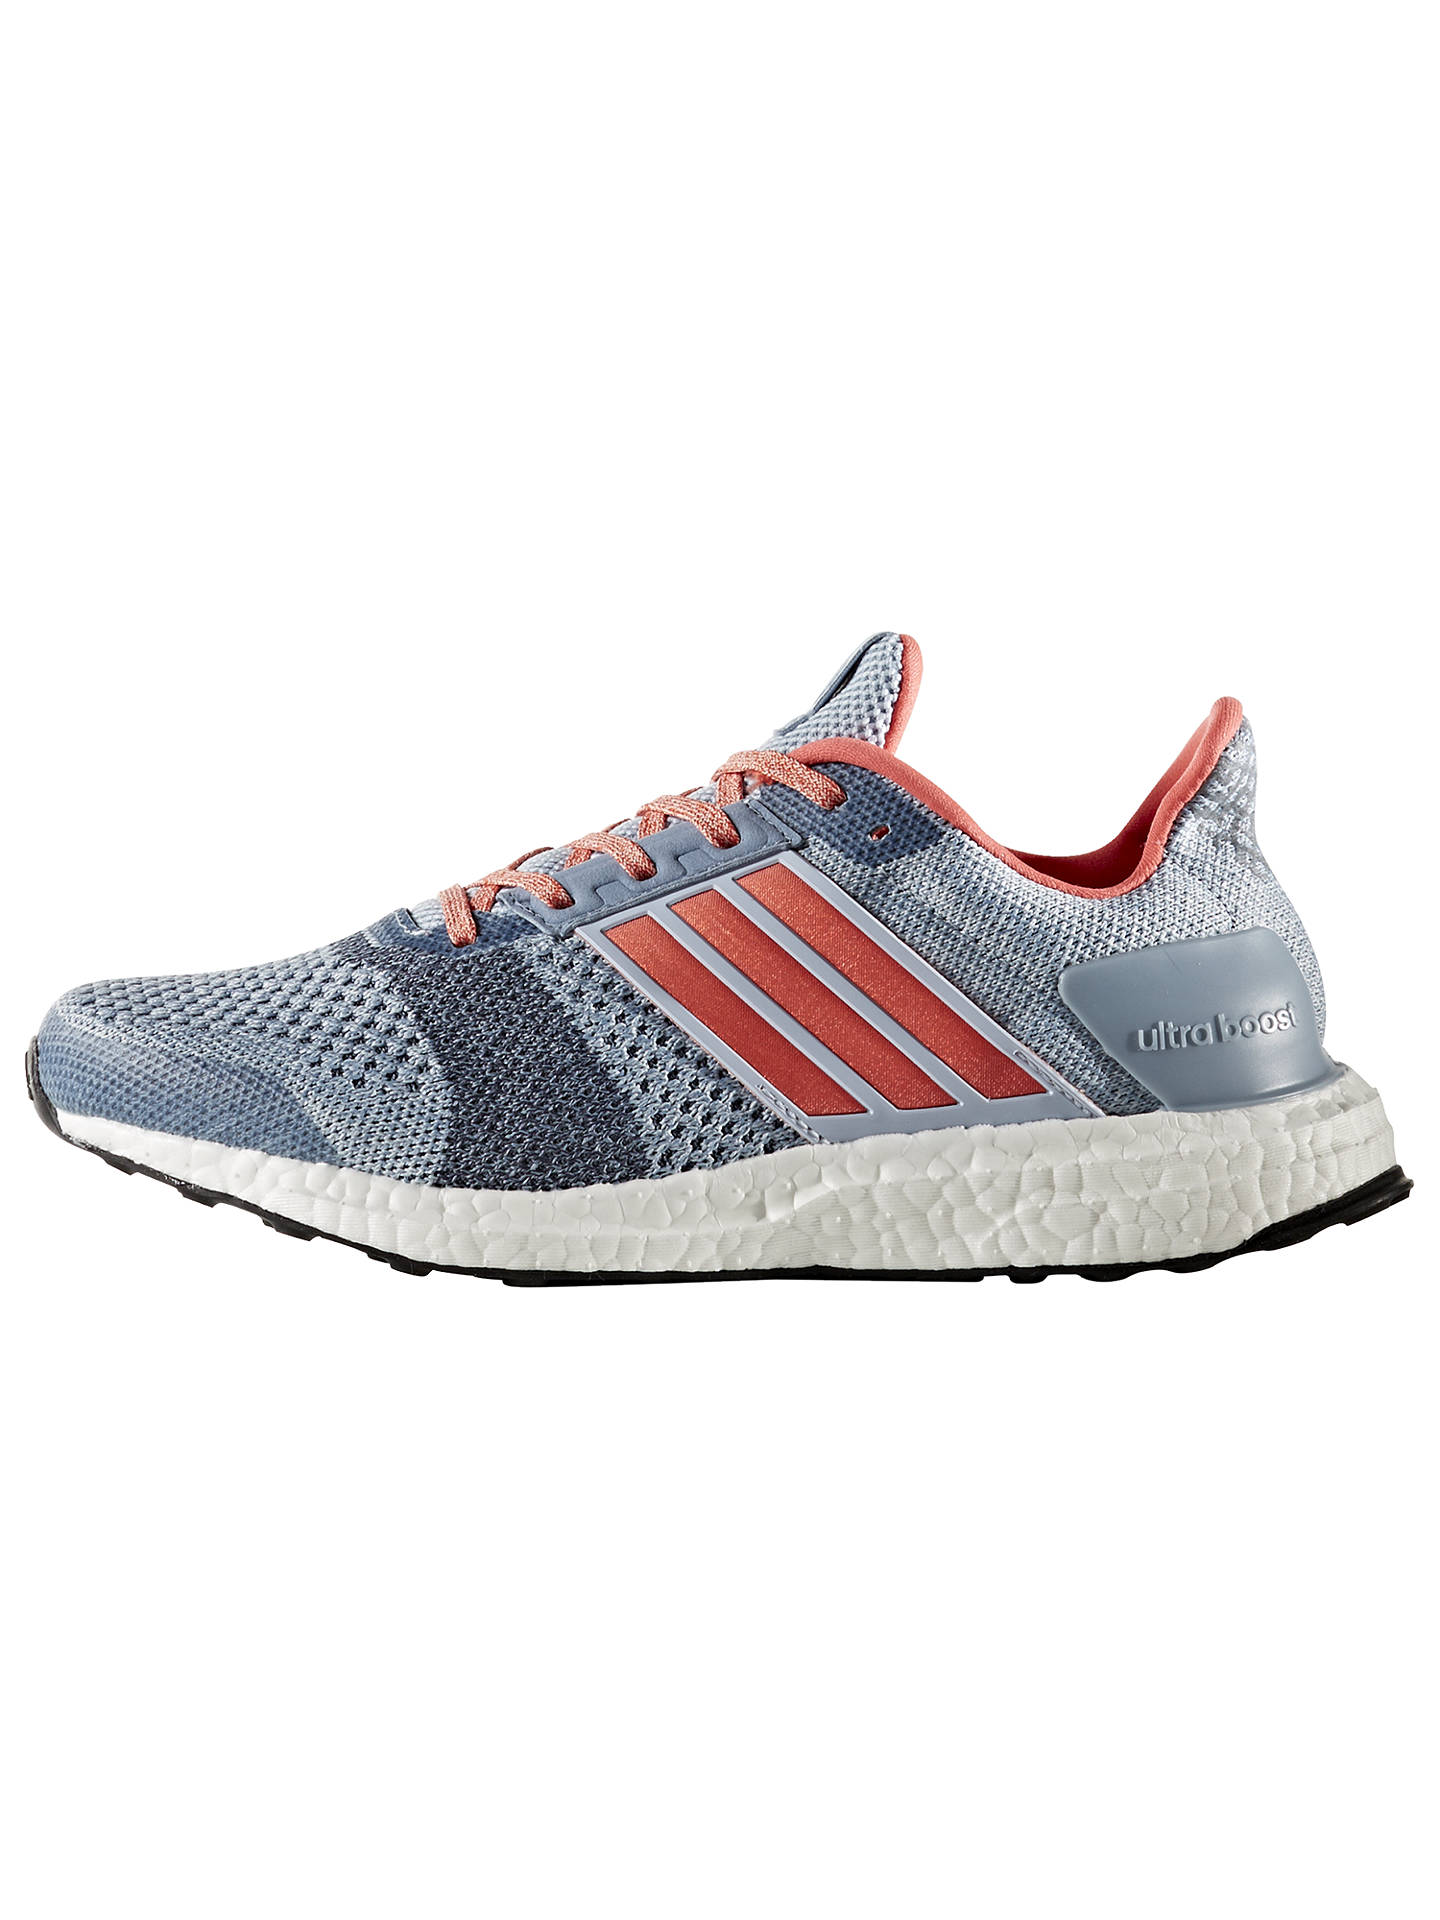 competitive price d5580 deb8a Adidas Ultra Boost ST Women's Running Shoes, Blue at John ...